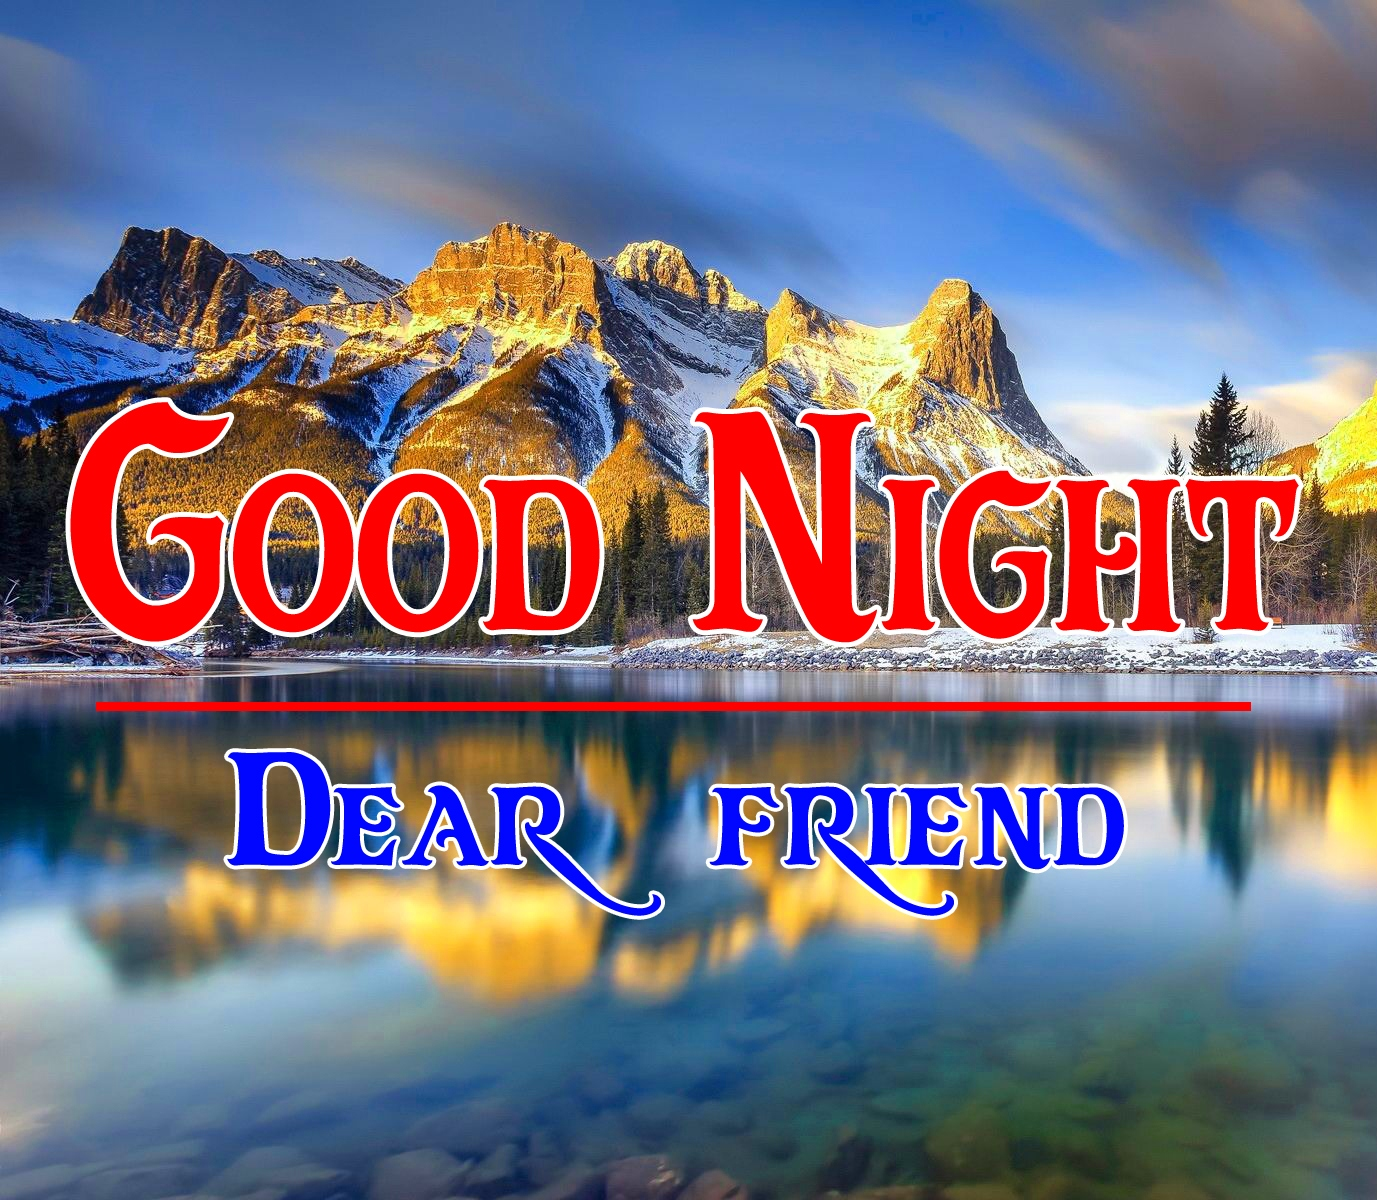 Good night wallpaper hd 72 1